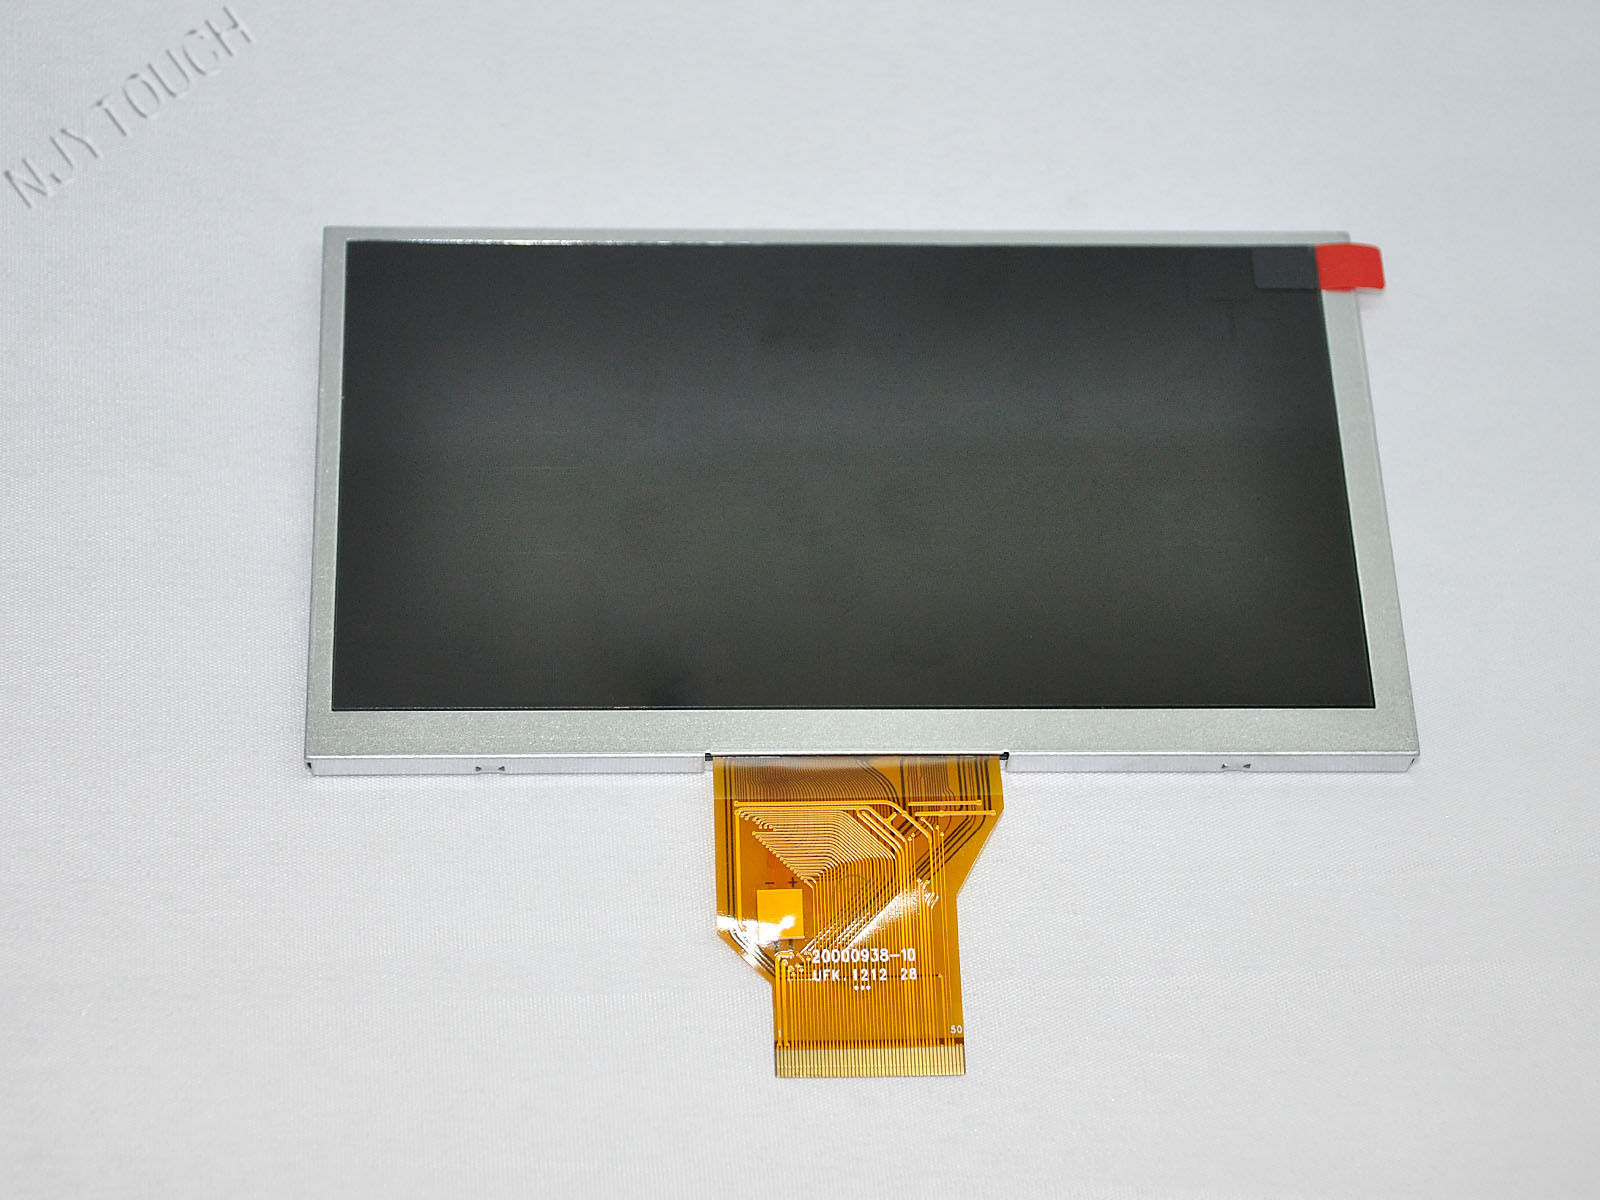 INNOLUX AT065TN14 LCD Panel